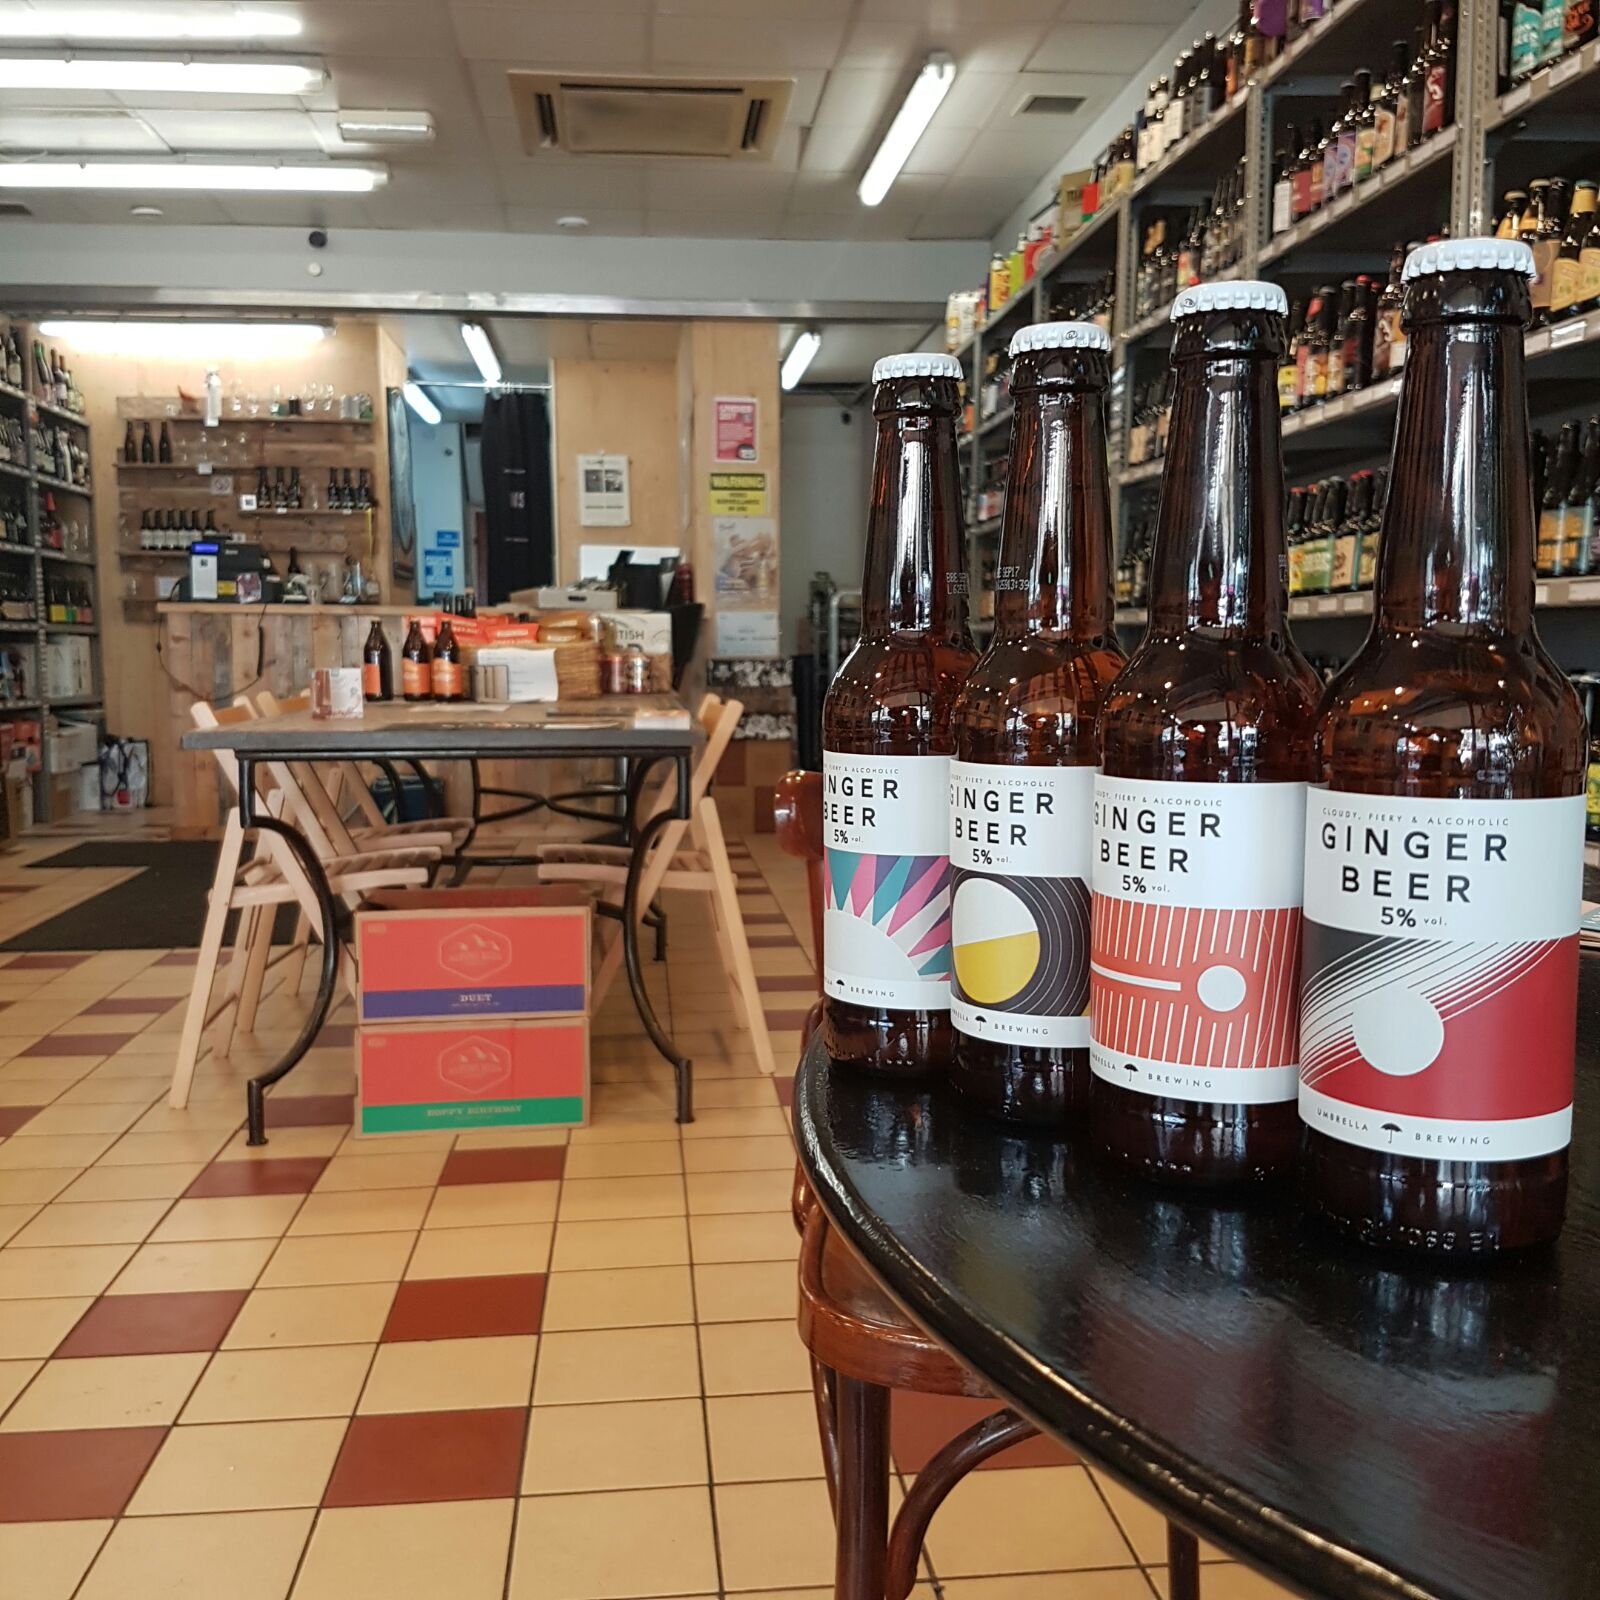 umbrella-brewing-ginger-beer-stockists-7-seasons-04